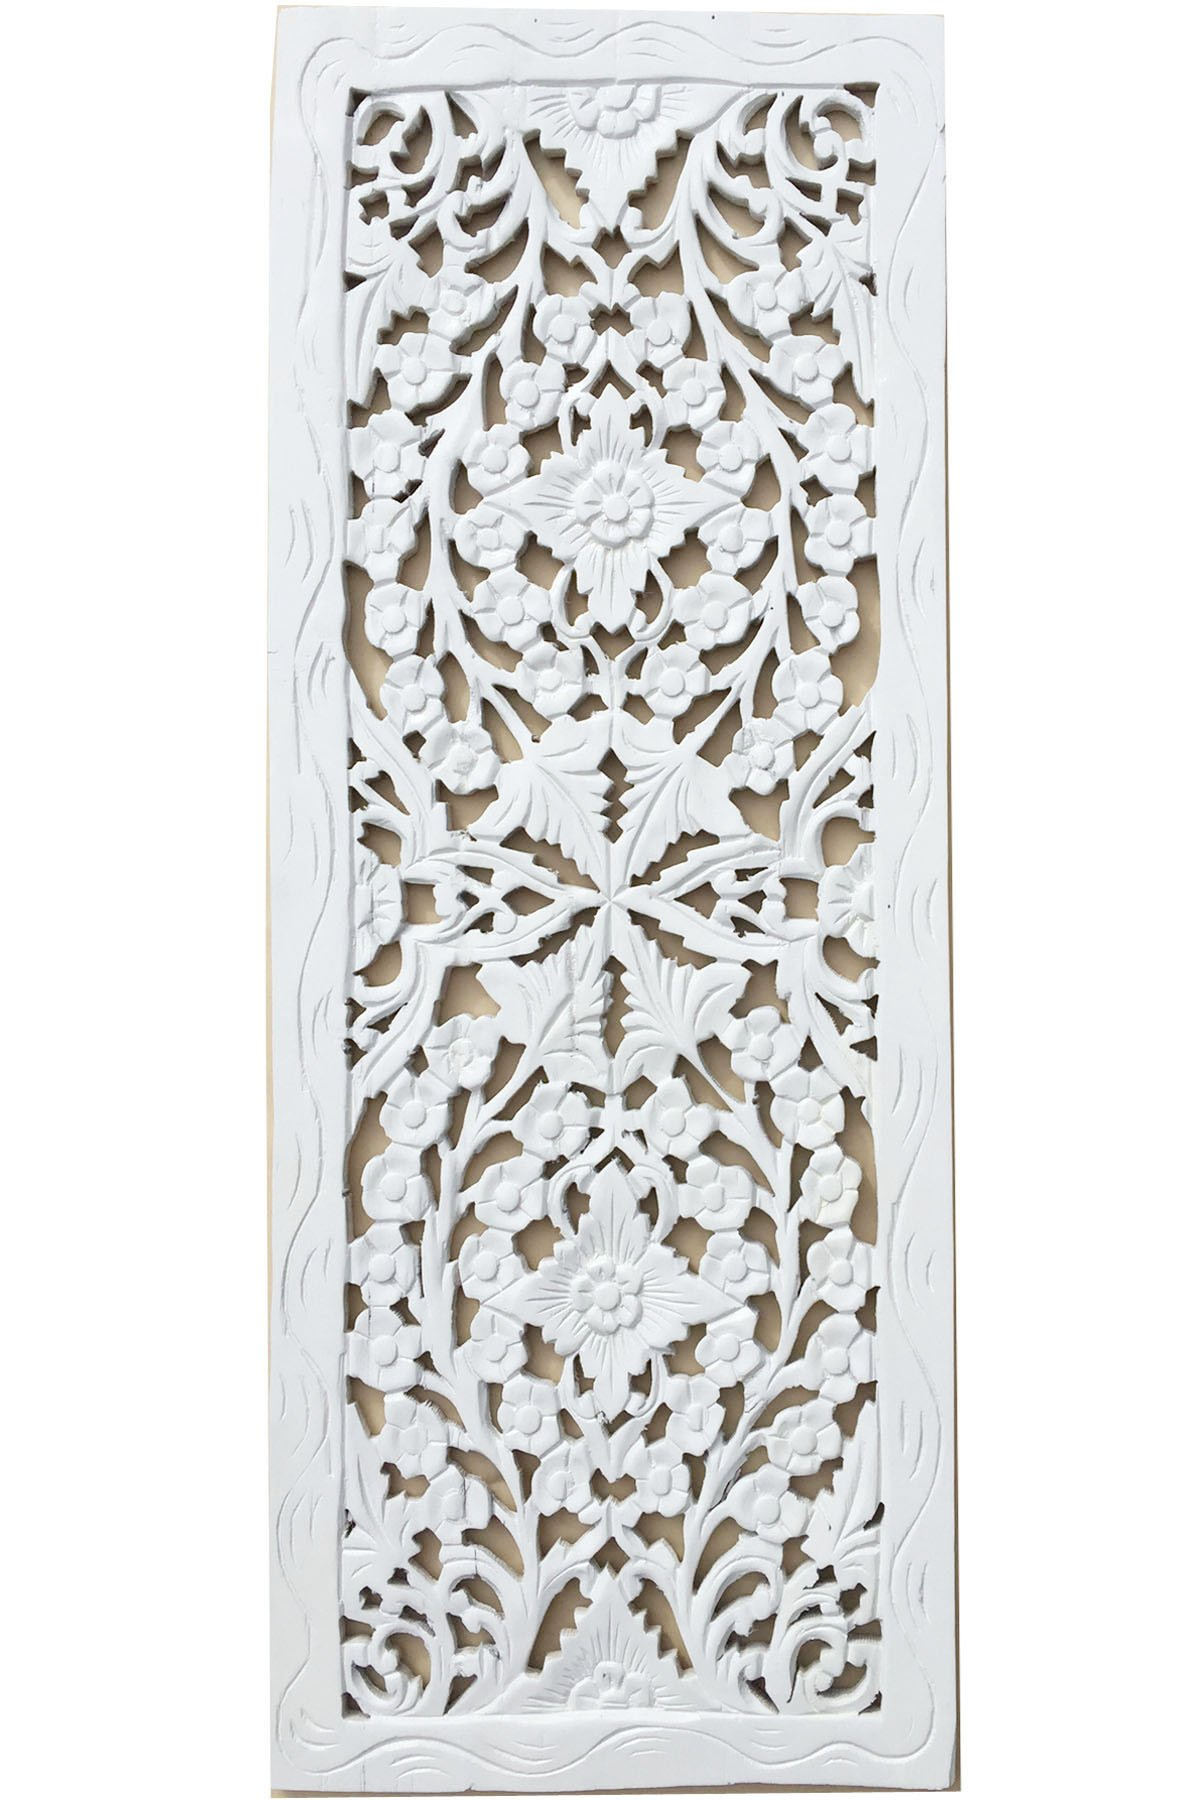 Large Carved Wood Wall Panel. Floral Wood Carved Wall Decor. Size 35.5''x13.5''x0.5'' (White)